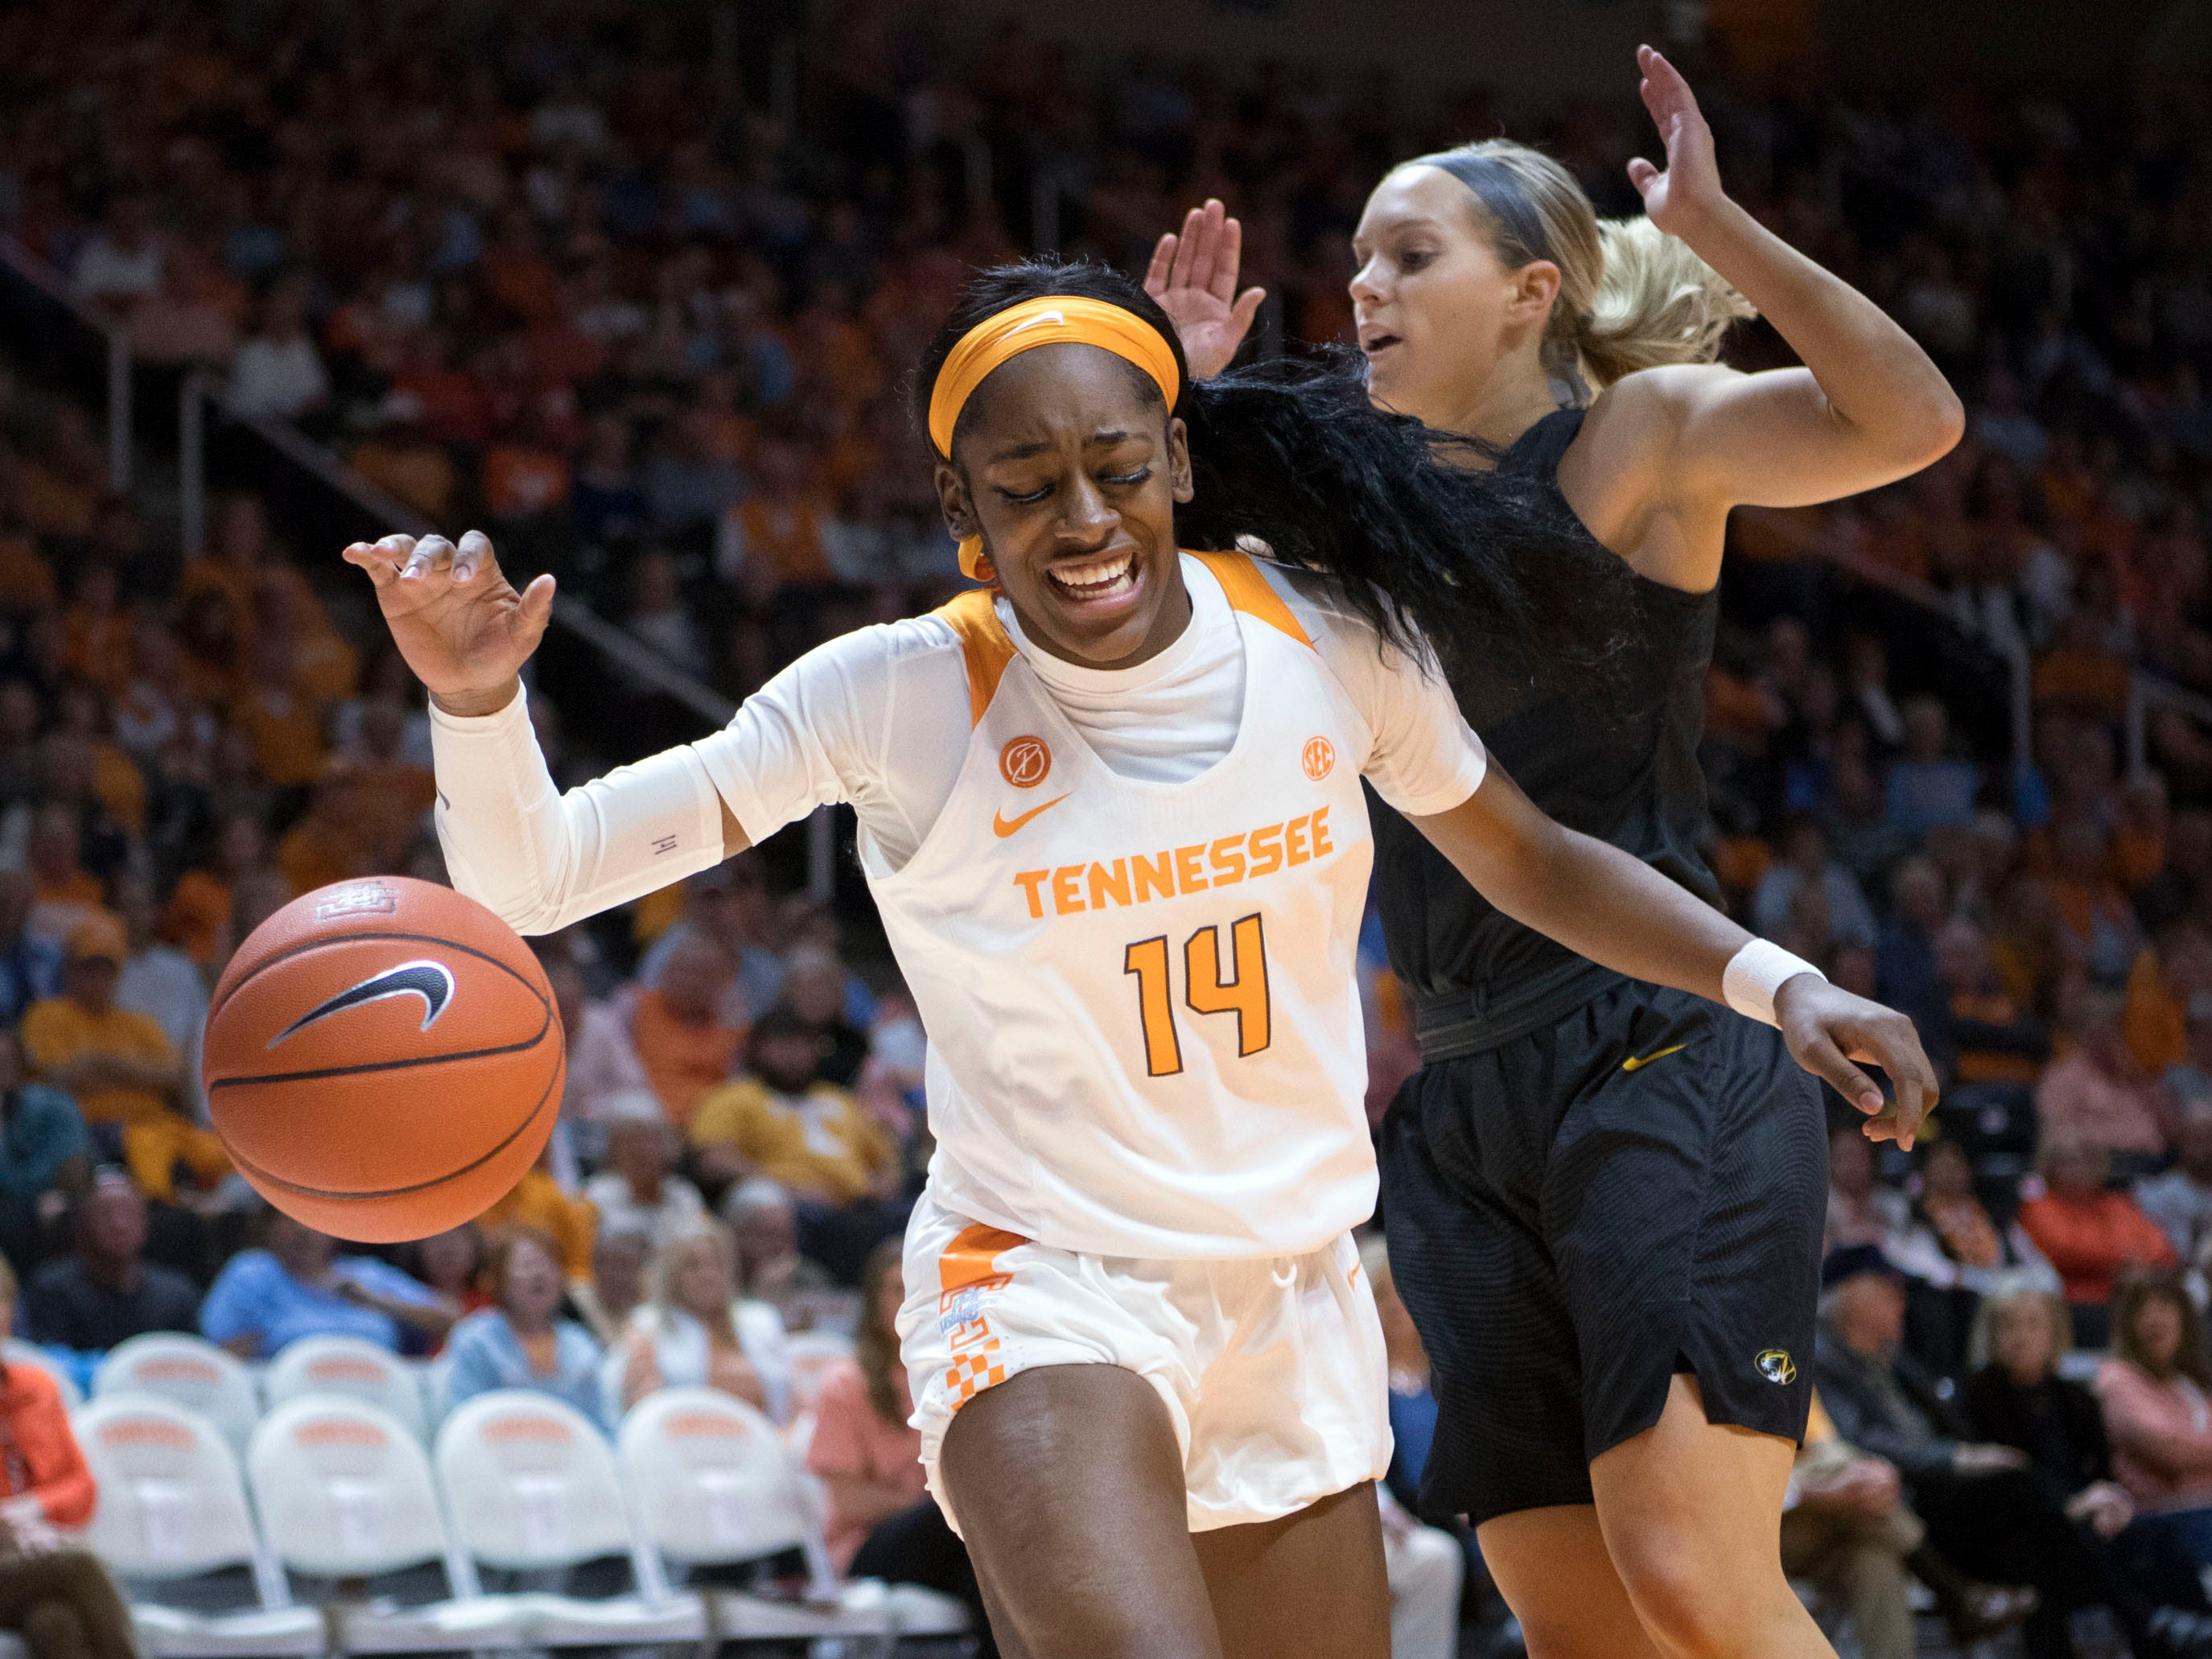 Tennessee's Zaay Green (14) loses the ball while defended by Missouri's Lauren Aldridge (5) at Thompson-Boling Arena on Sunday, January 6, 2019.